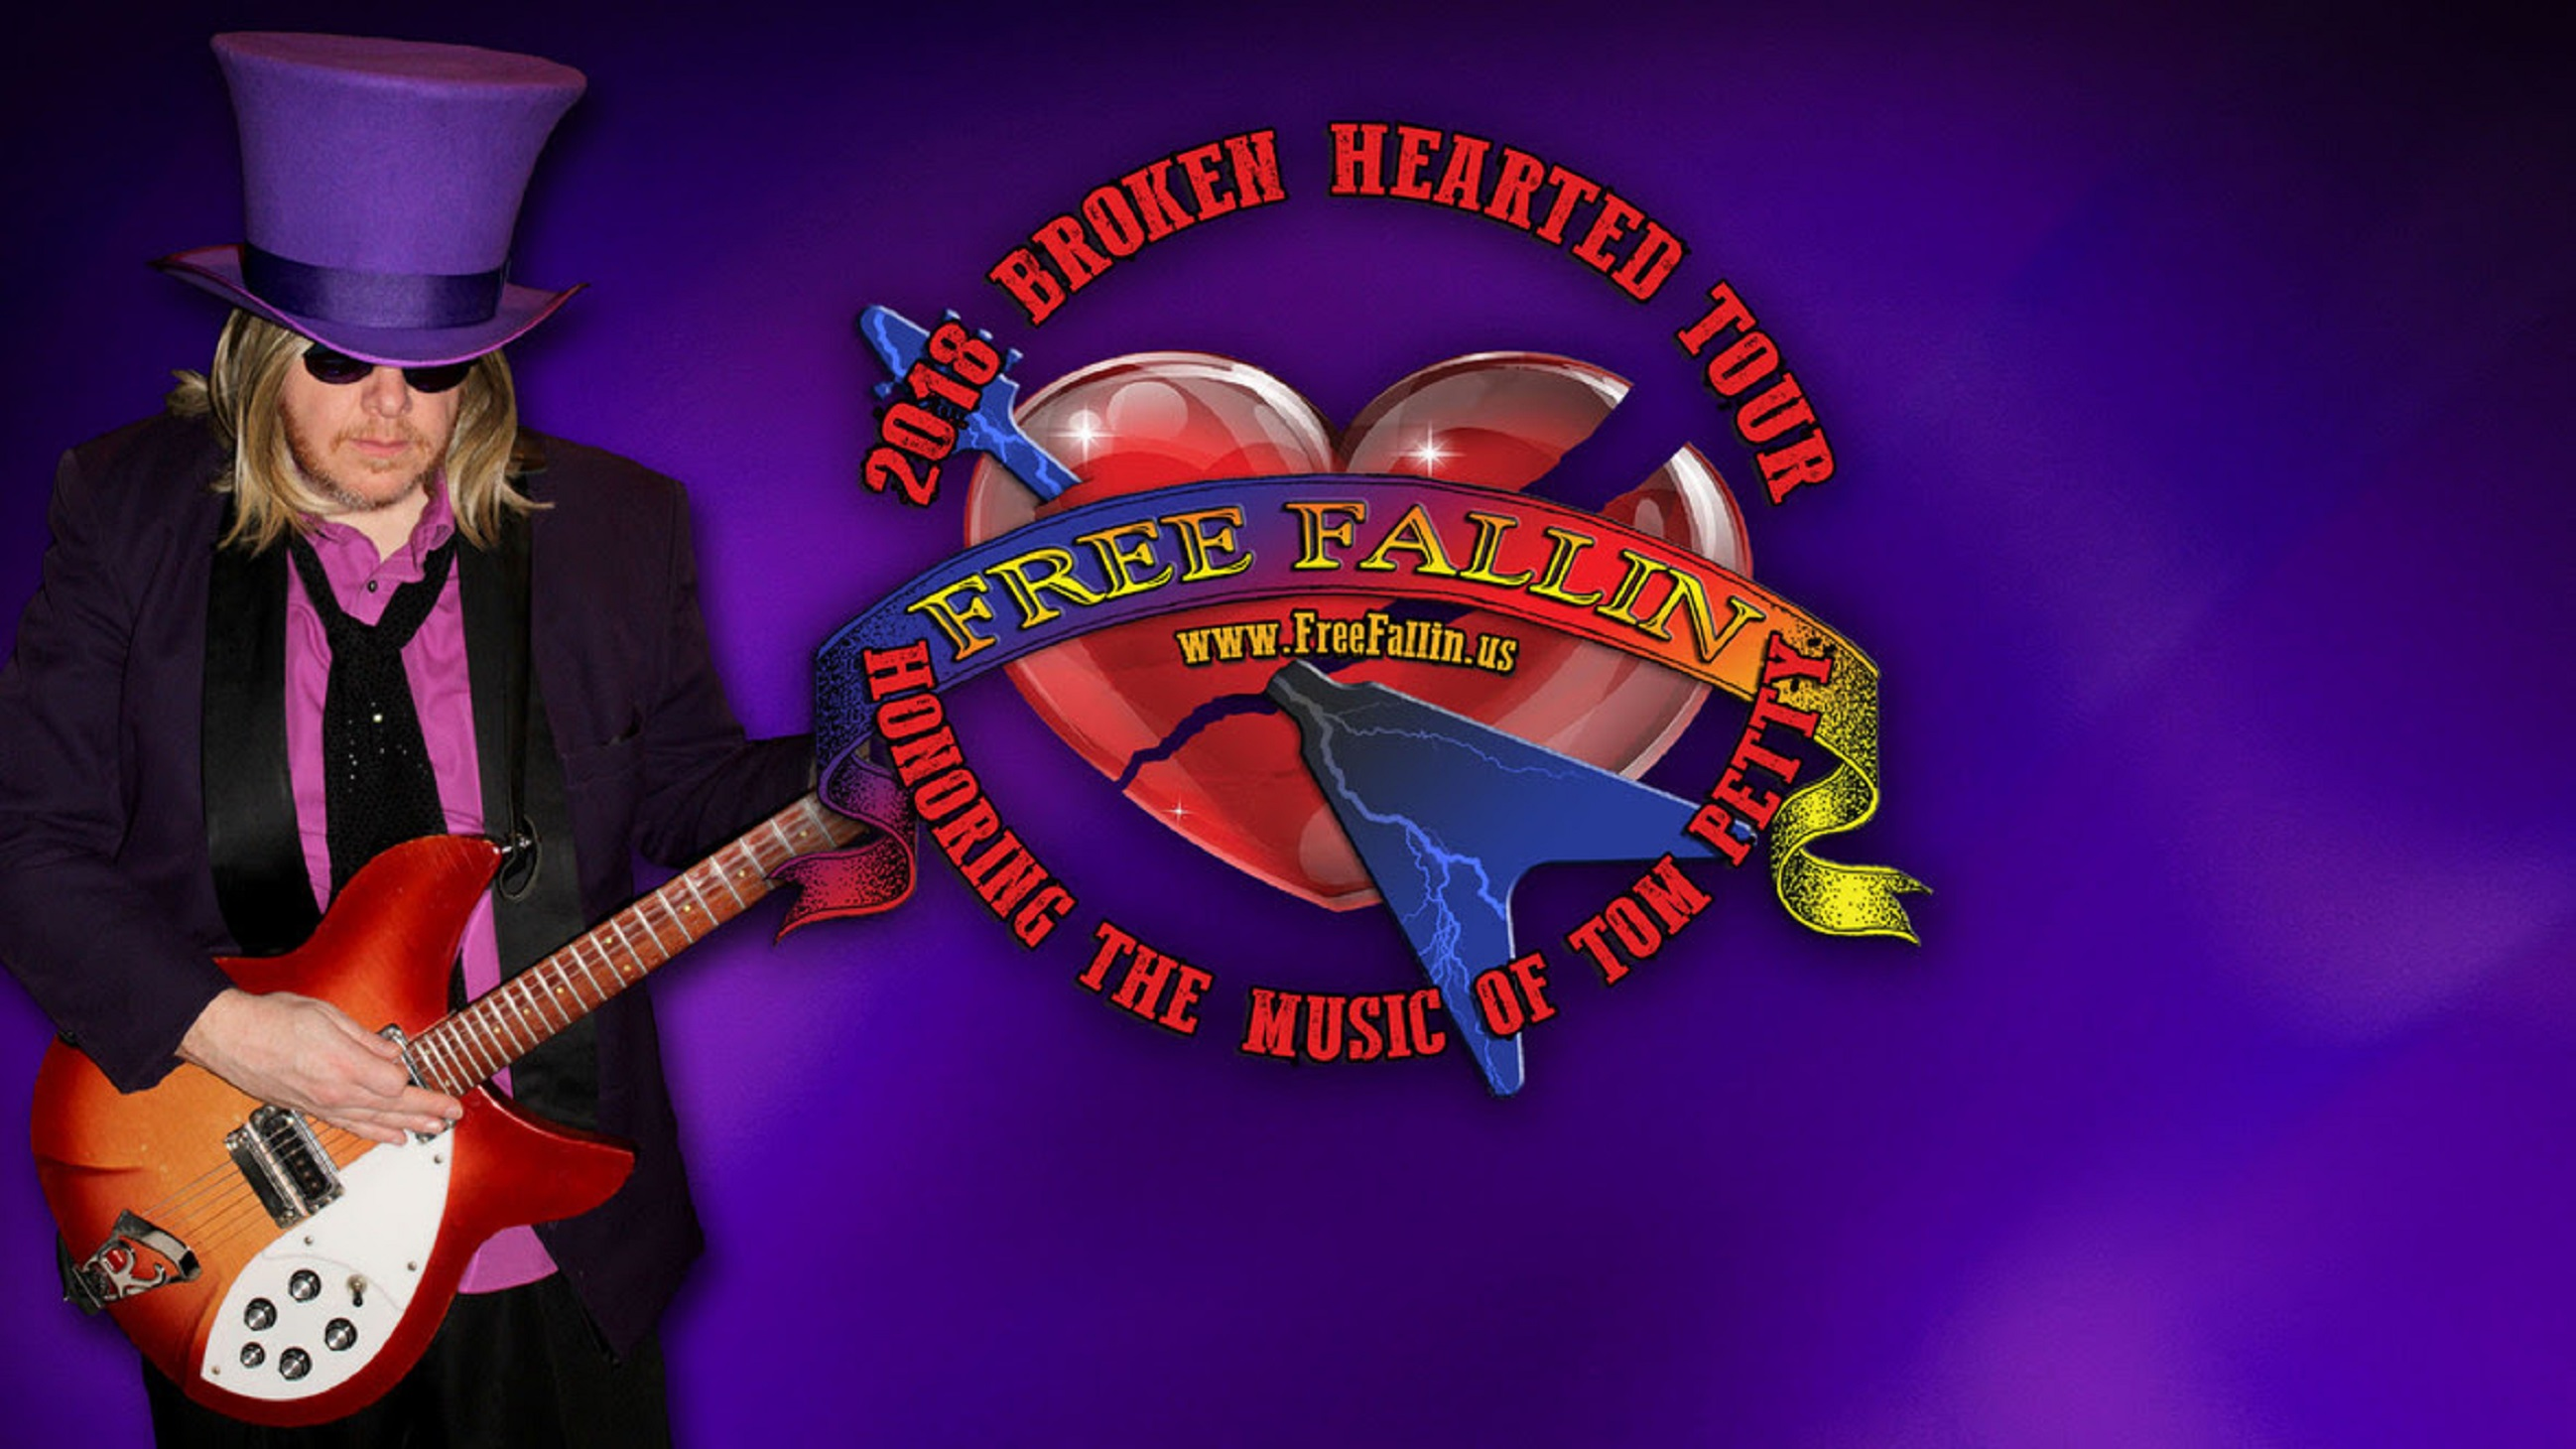 Free Fallin Celebrates the Life and Music of Tom Petty